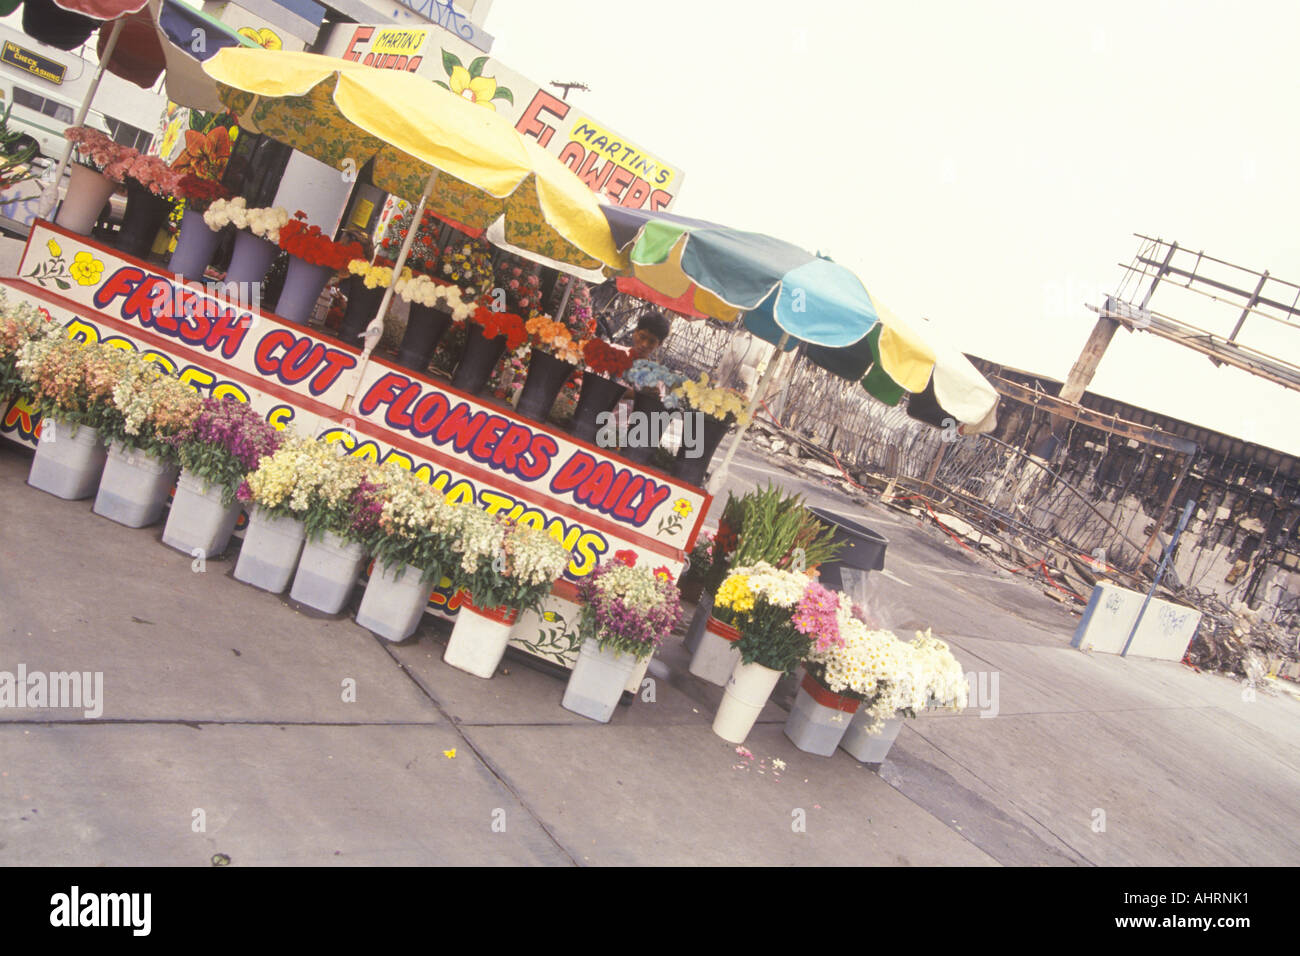 Flower stand in front of business destroyed by riots South Central Los Angeles California - Stock Image